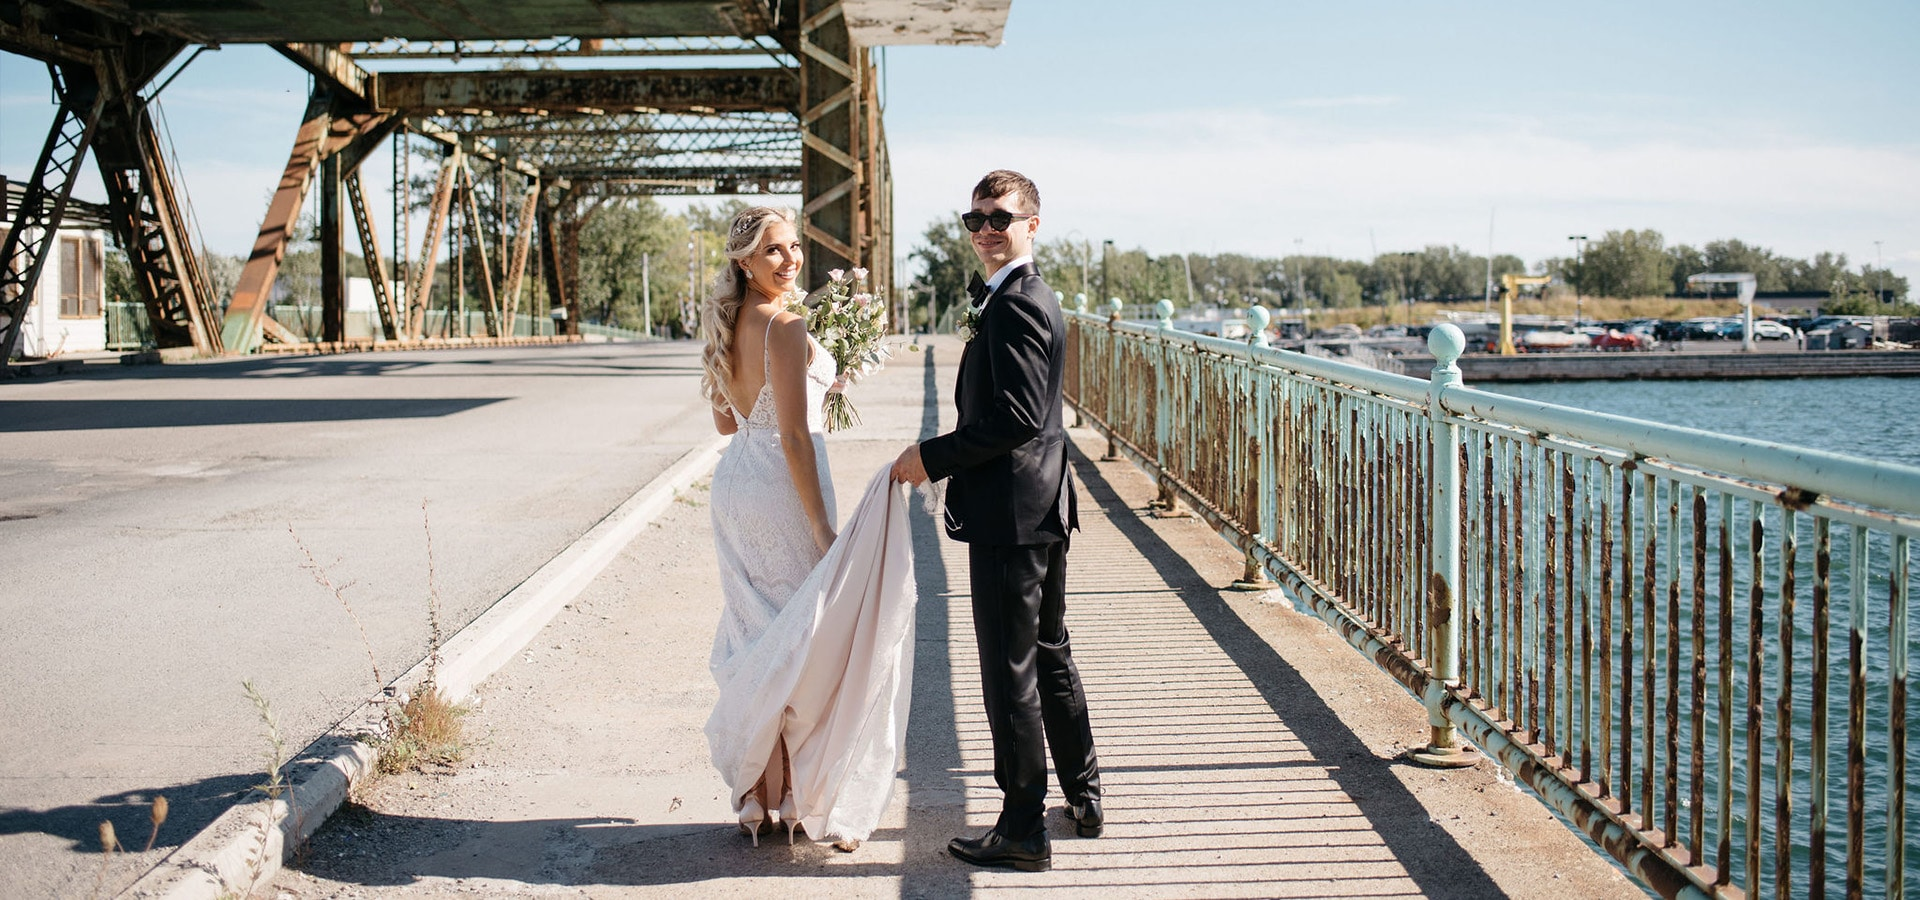 Hero image for Caslon and Nick's Playful and Romantic Wedding at District 28